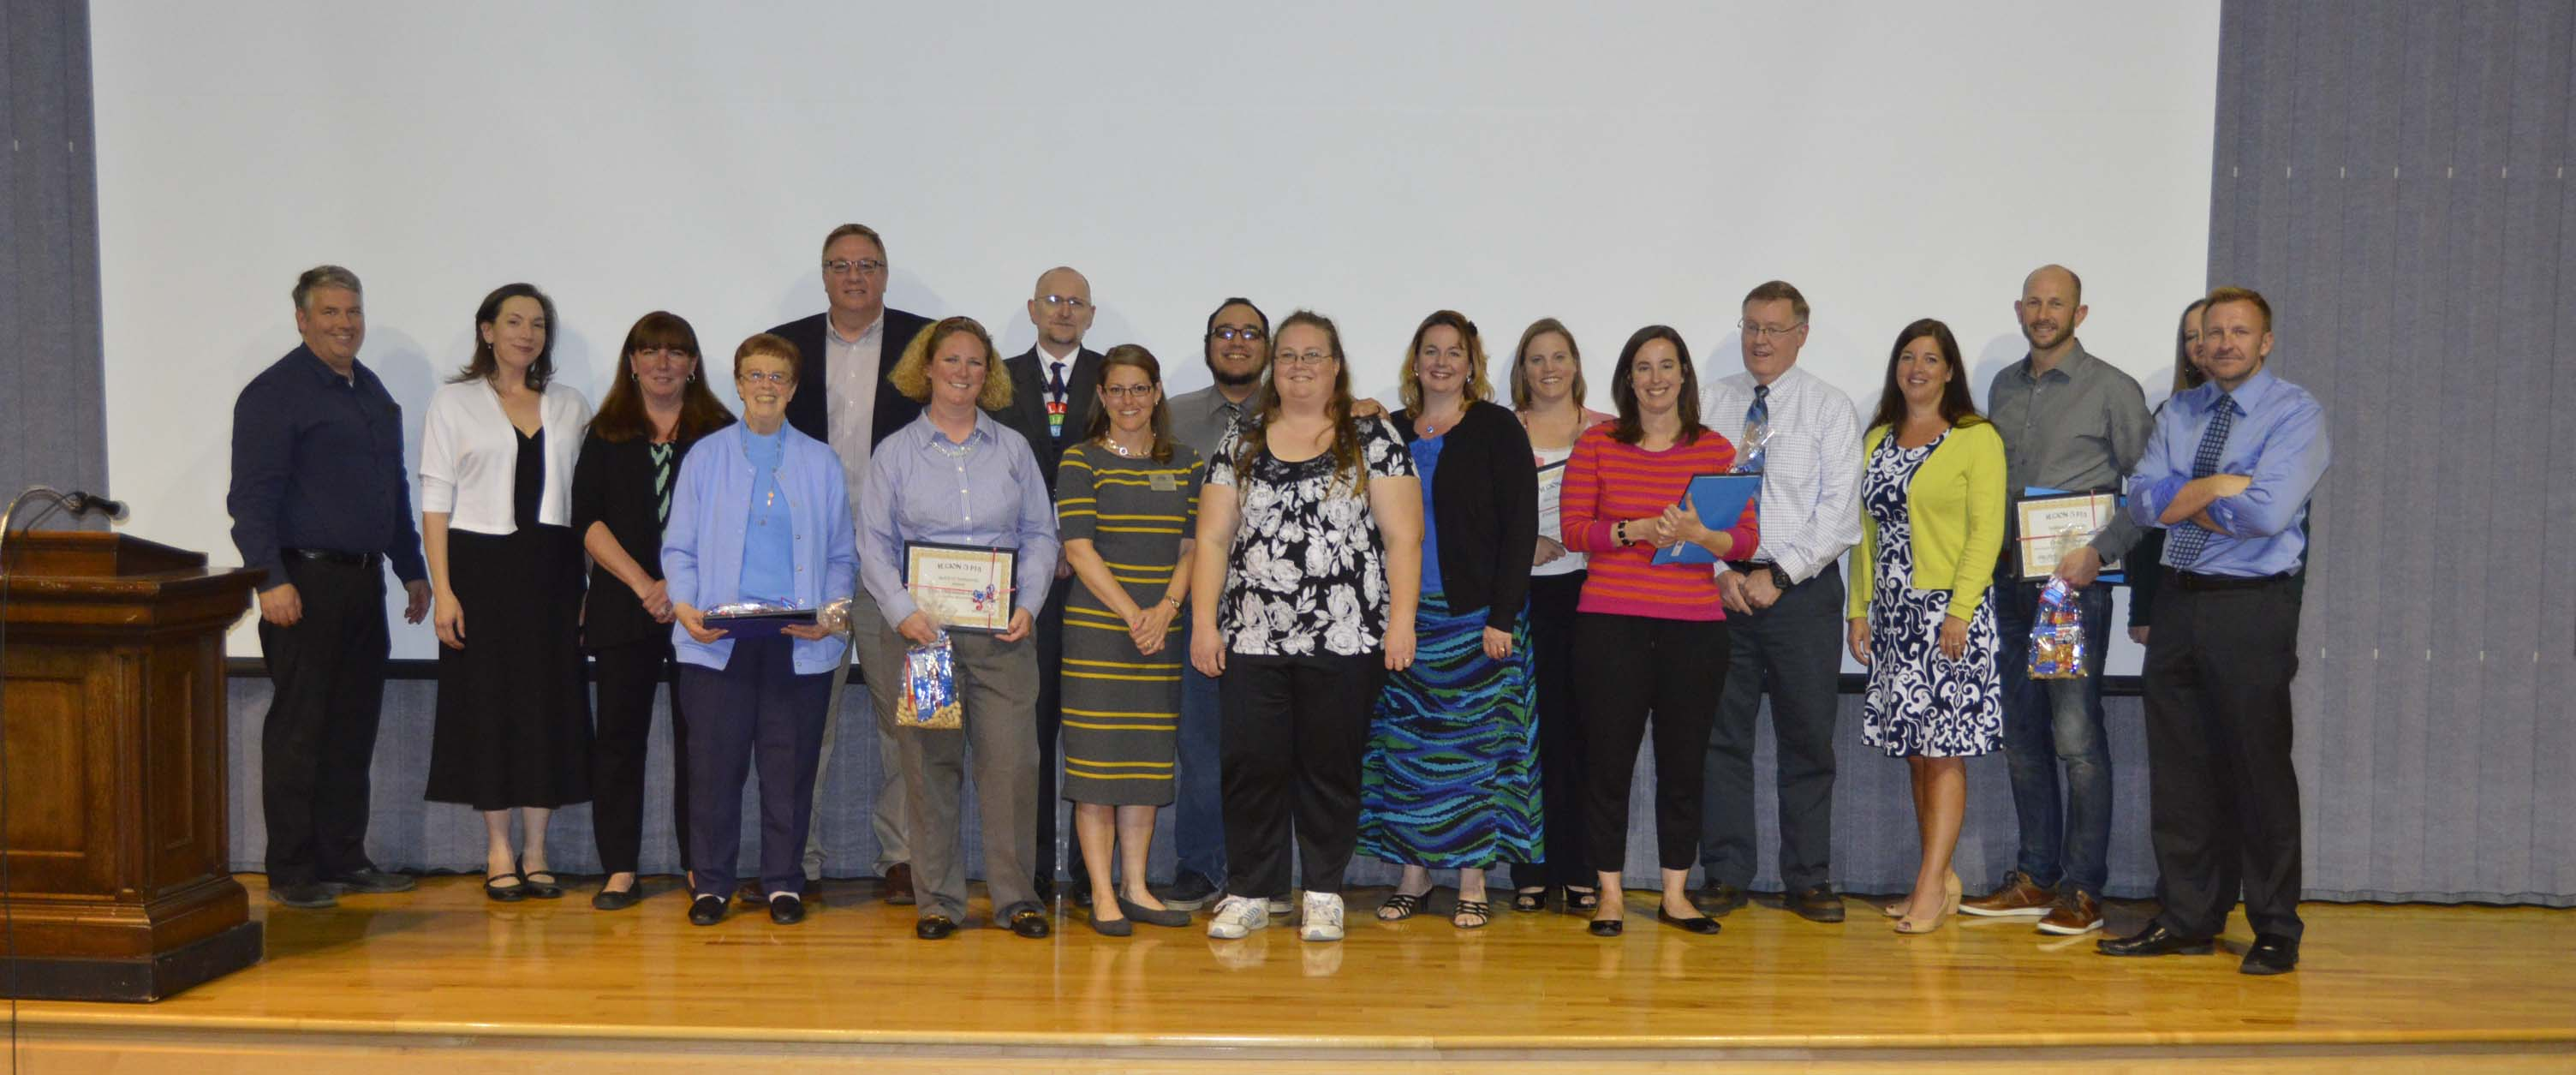 influence of pta on school adminsitration National pta school of excellence pta's mission is to make every child's potential a reality by engaging and empowering families and administrators.